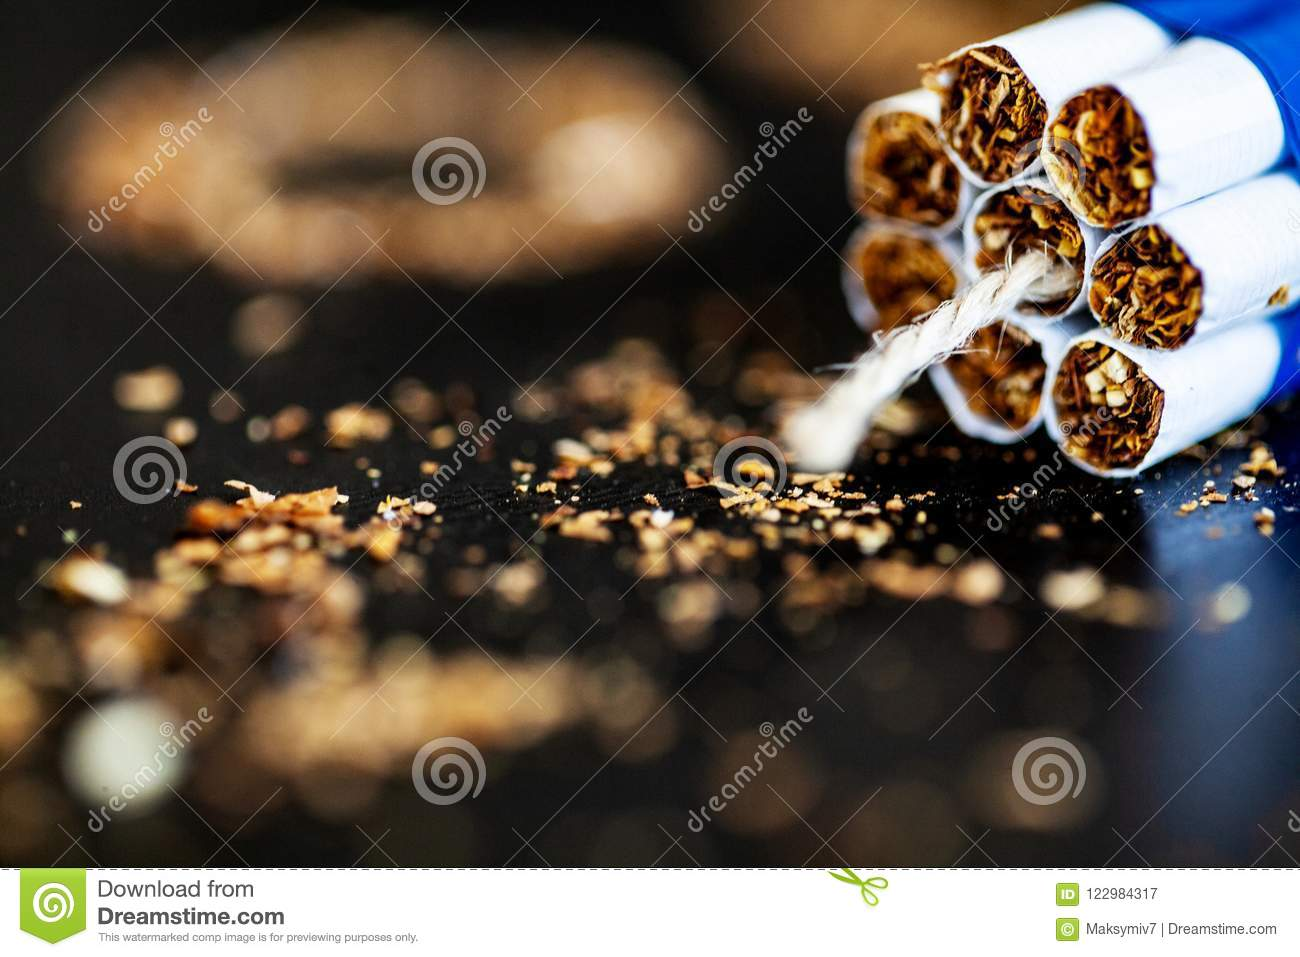 Stop Smoking Concept On Background With Broken Cigarettes